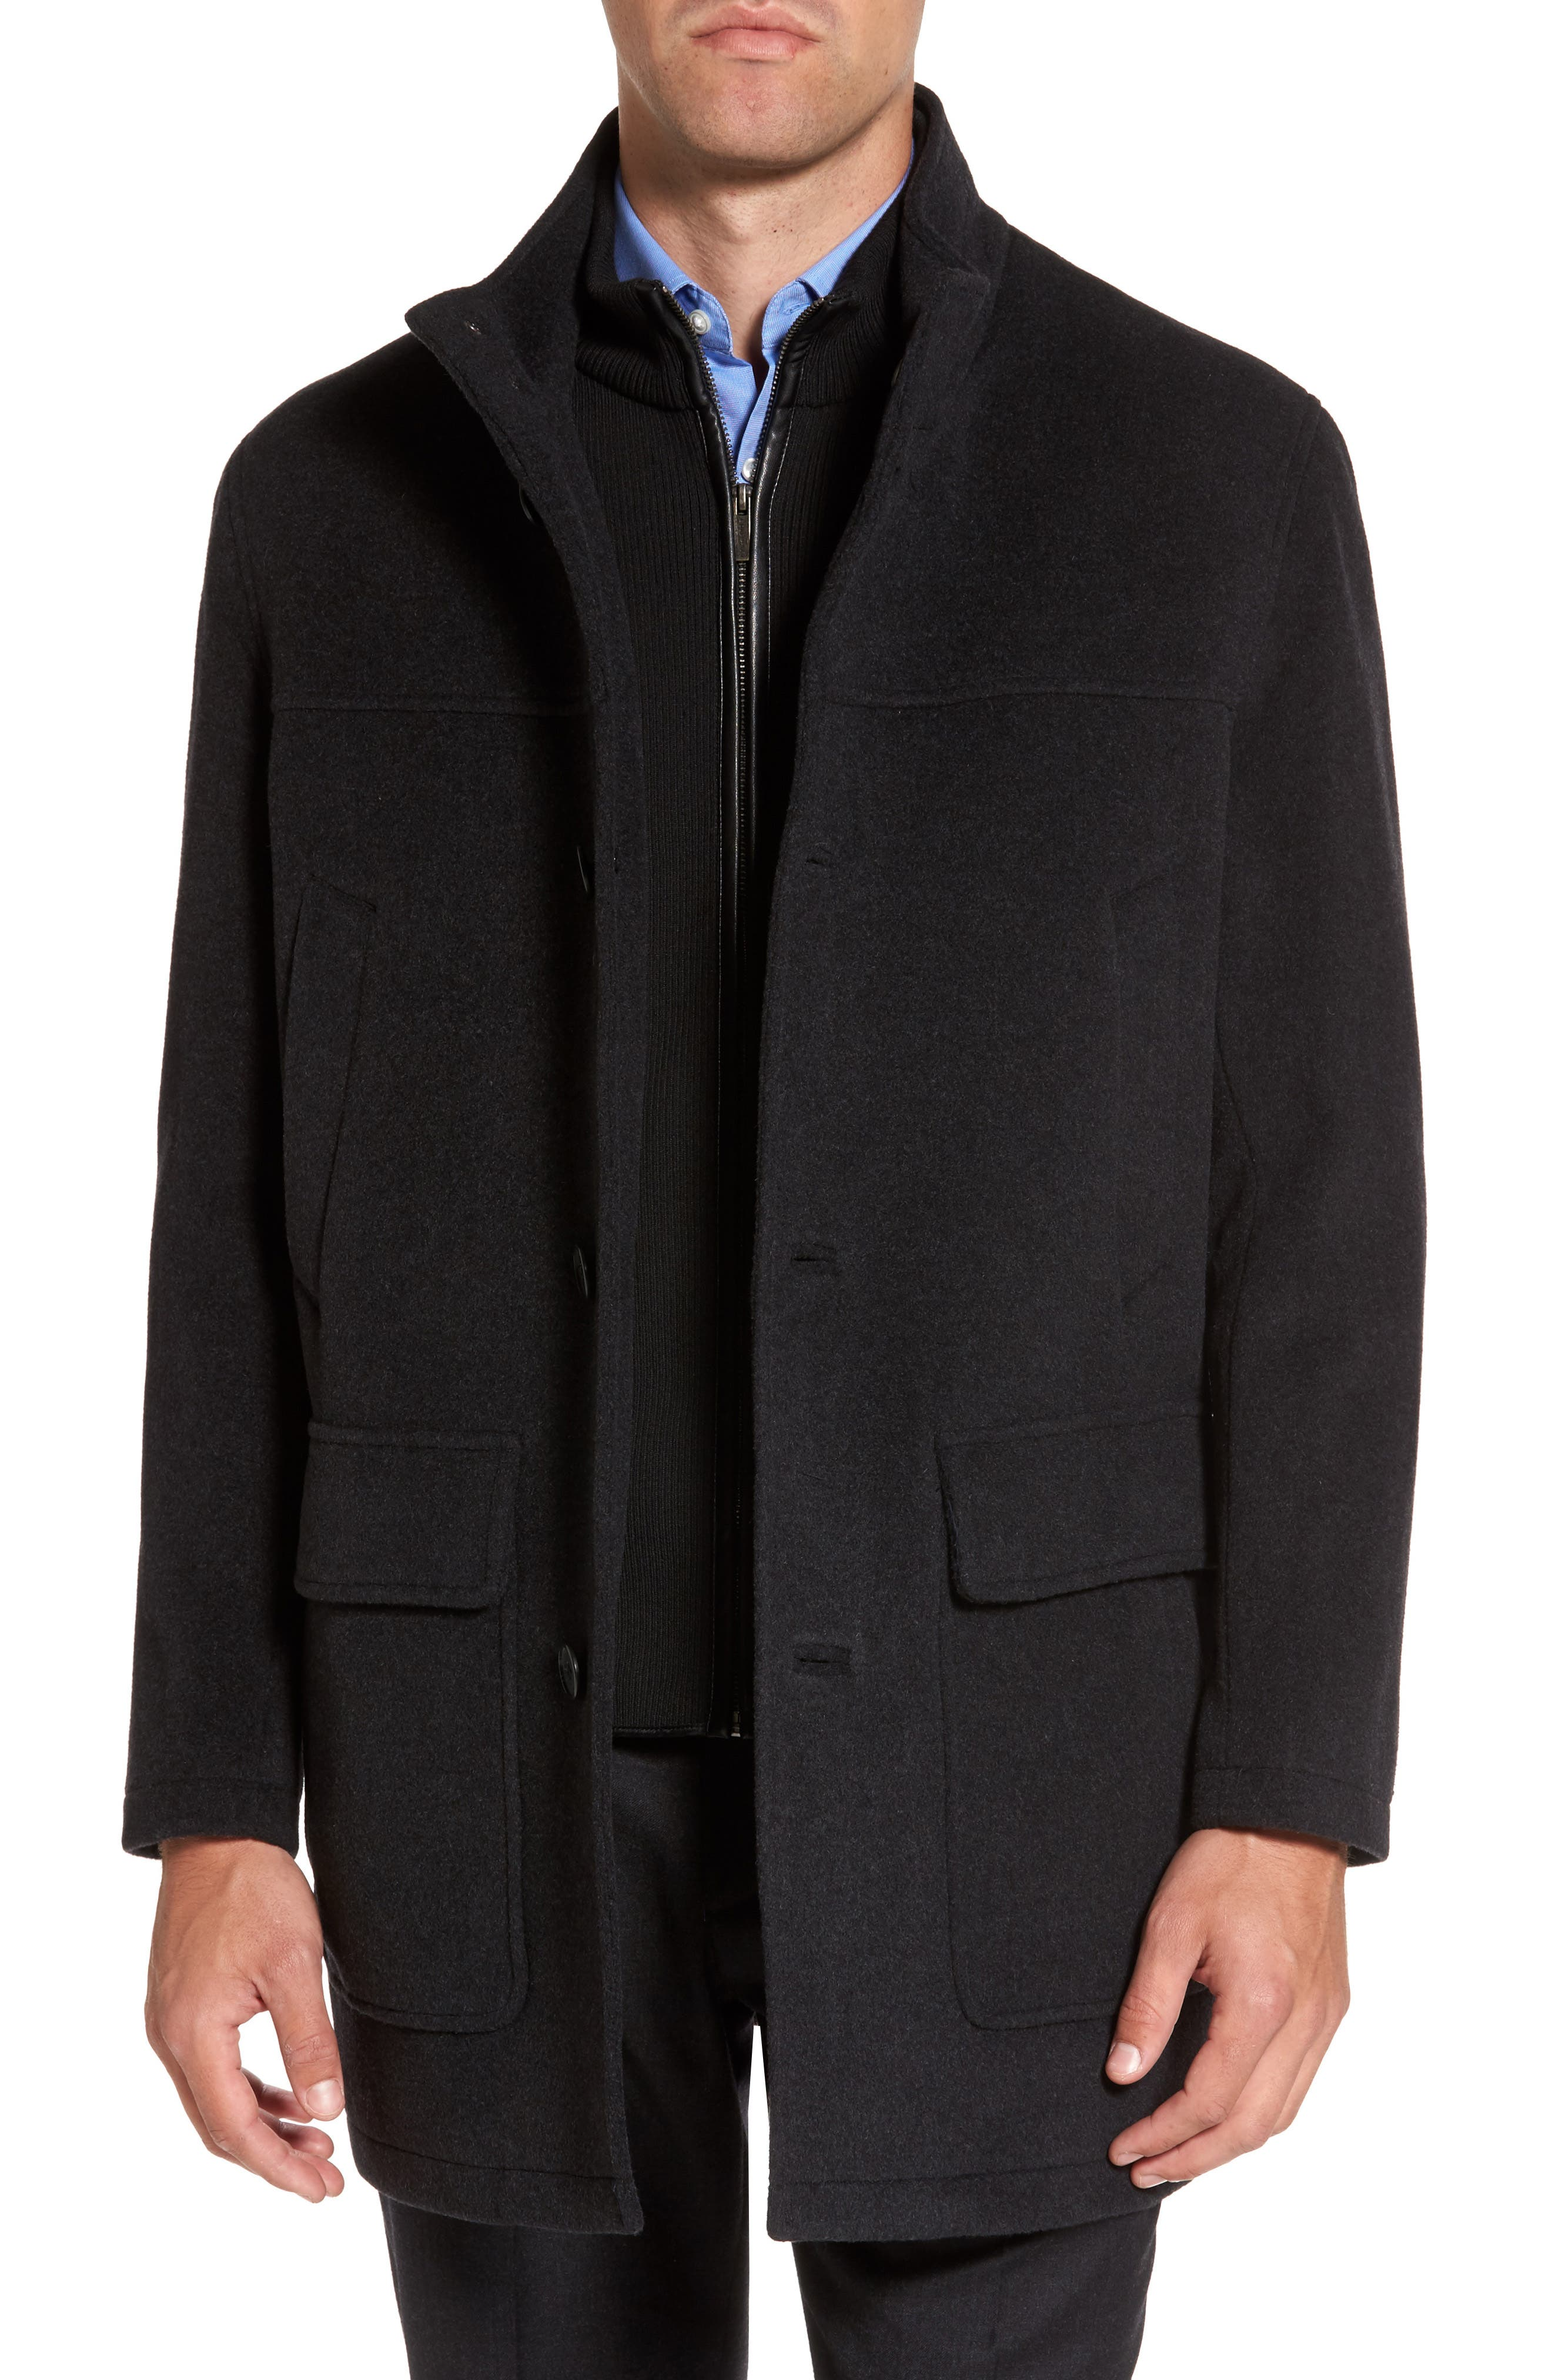 Wool Blend Topcoat with Inset Bib,                             Alternate thumbnail 15, color,